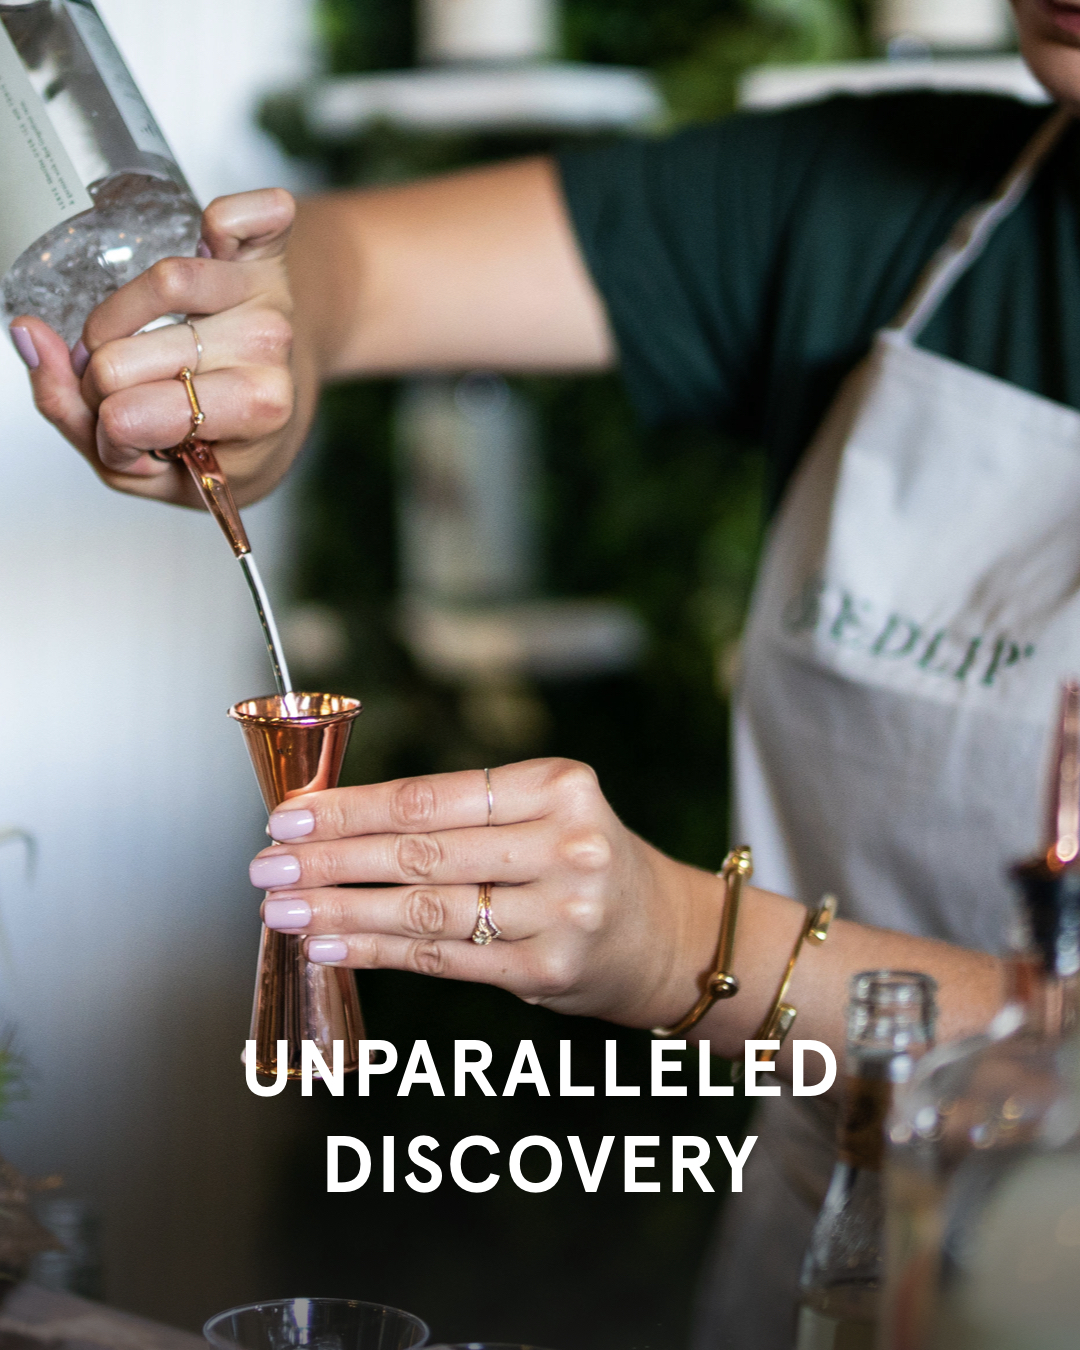 - Explore breakthrough brands and product innovations in our Discovery Lounge — featuring 200+ of the best consumer brand innovations.